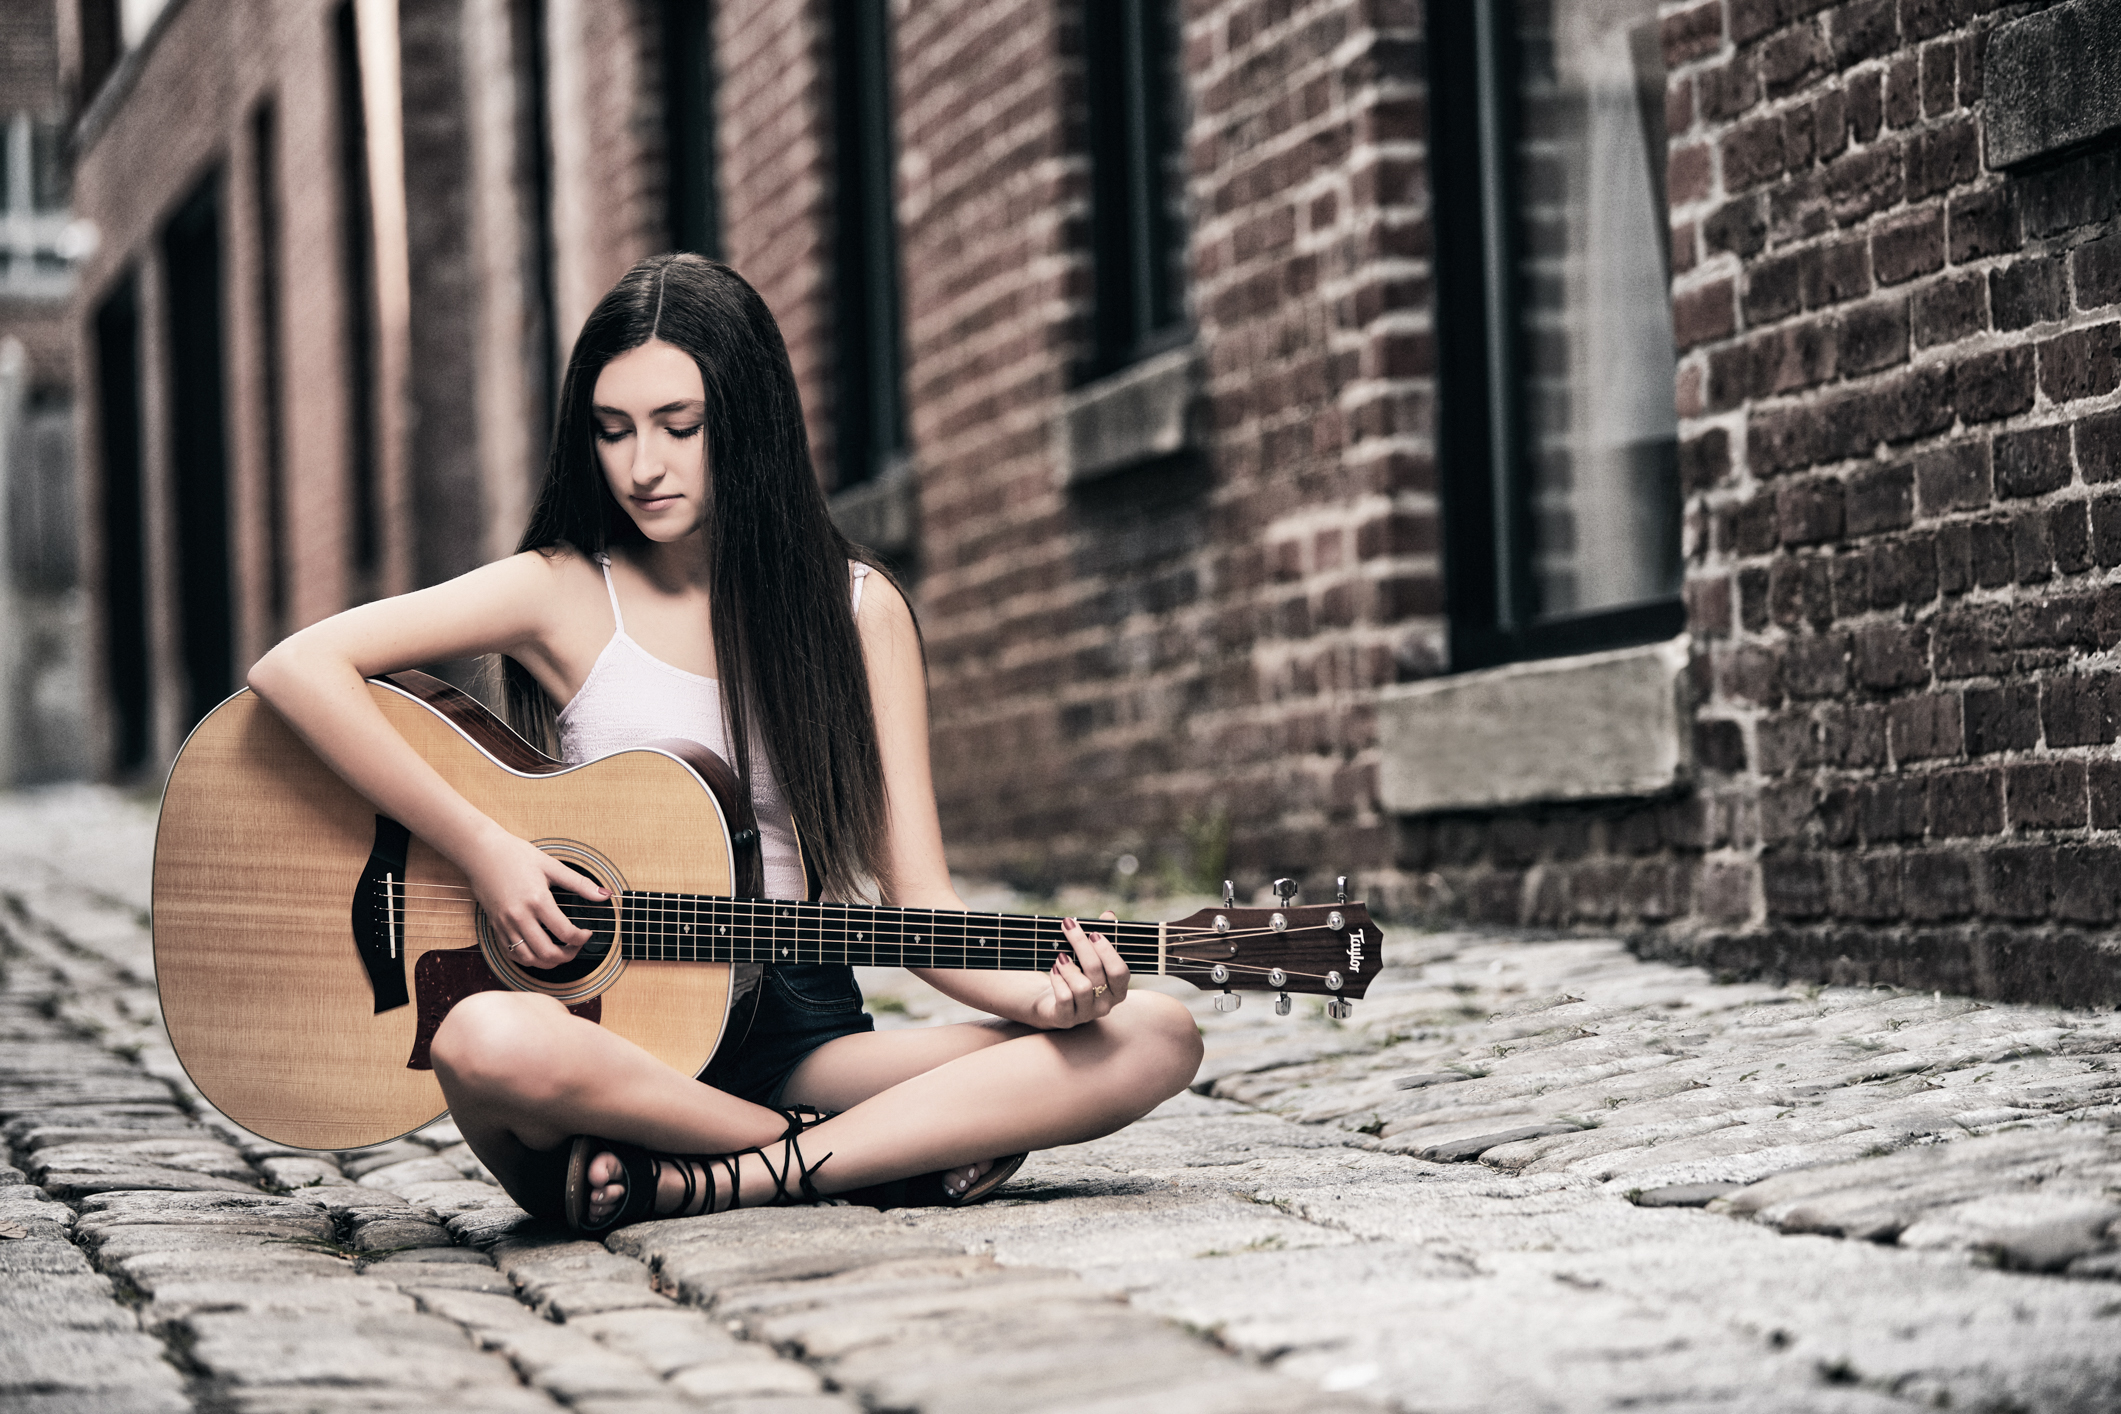 Washington, DC – Teenage Singer/Songwriter Aishlinn Kivlighn Photo Shoot in Georgetown